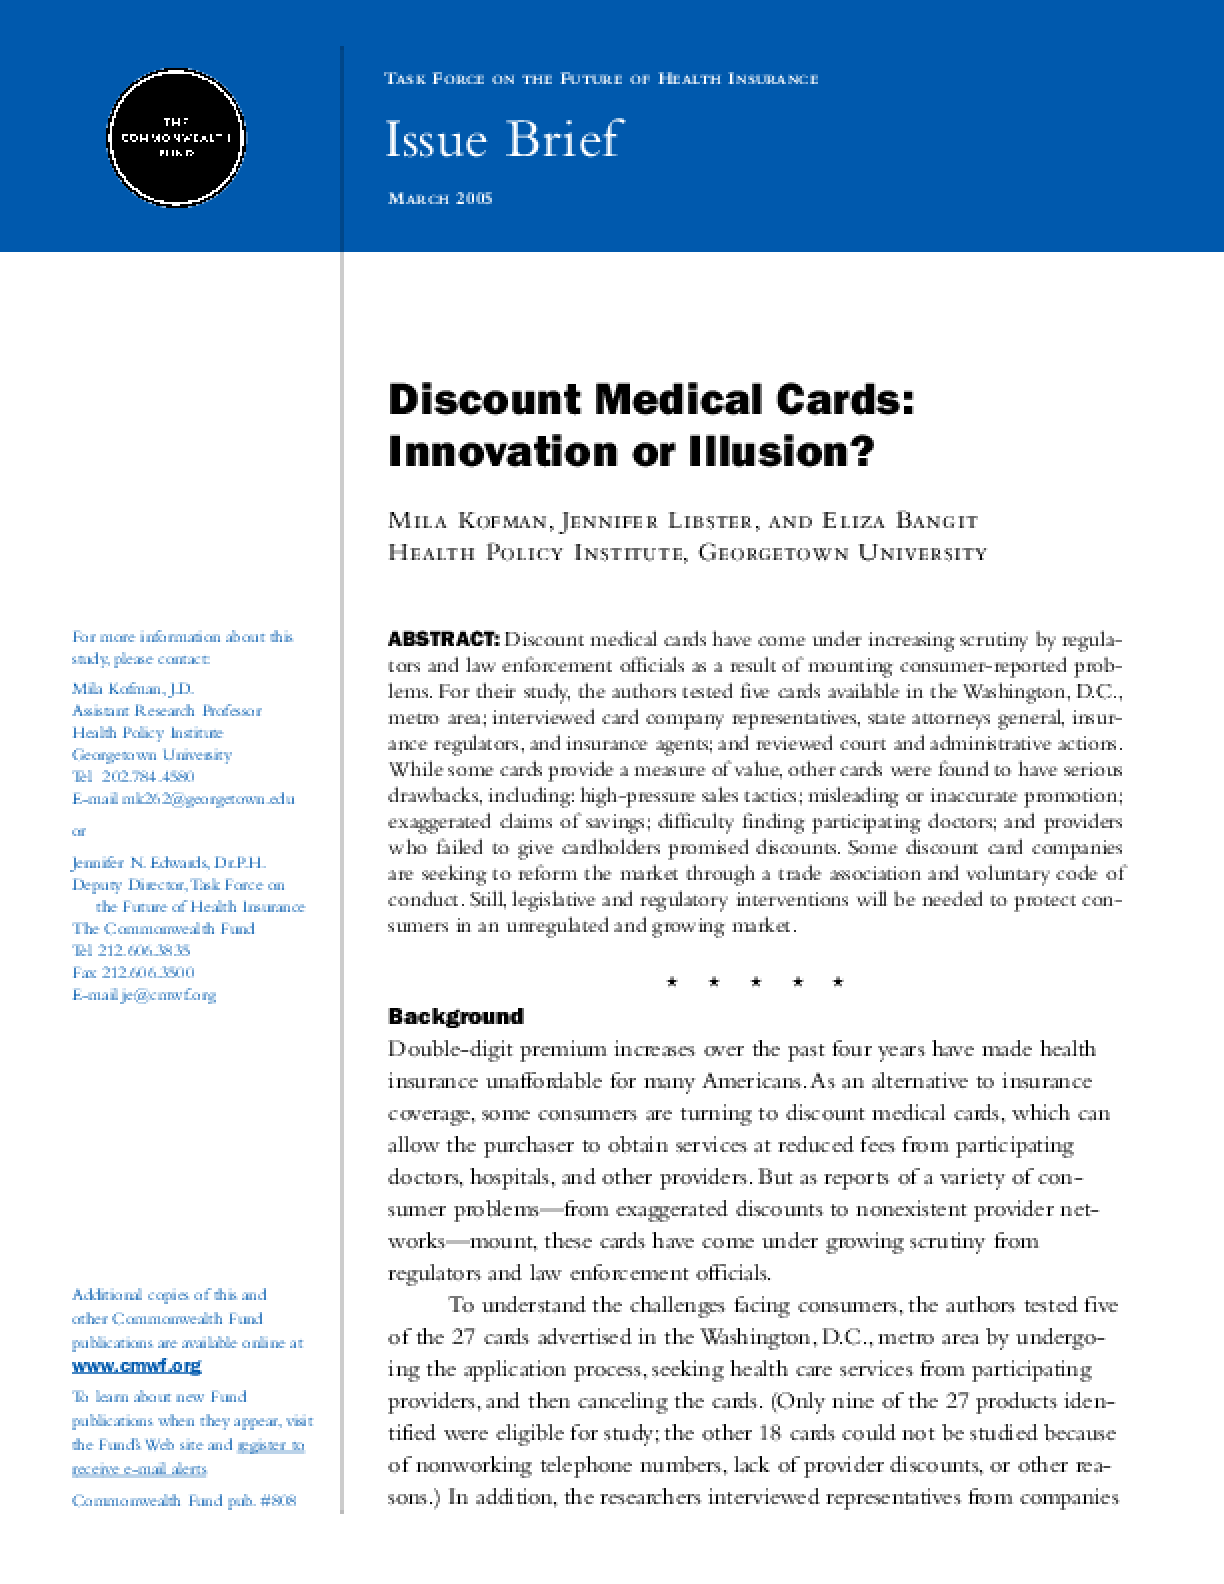 Discount Medical Cards: Innovation or Illusion?